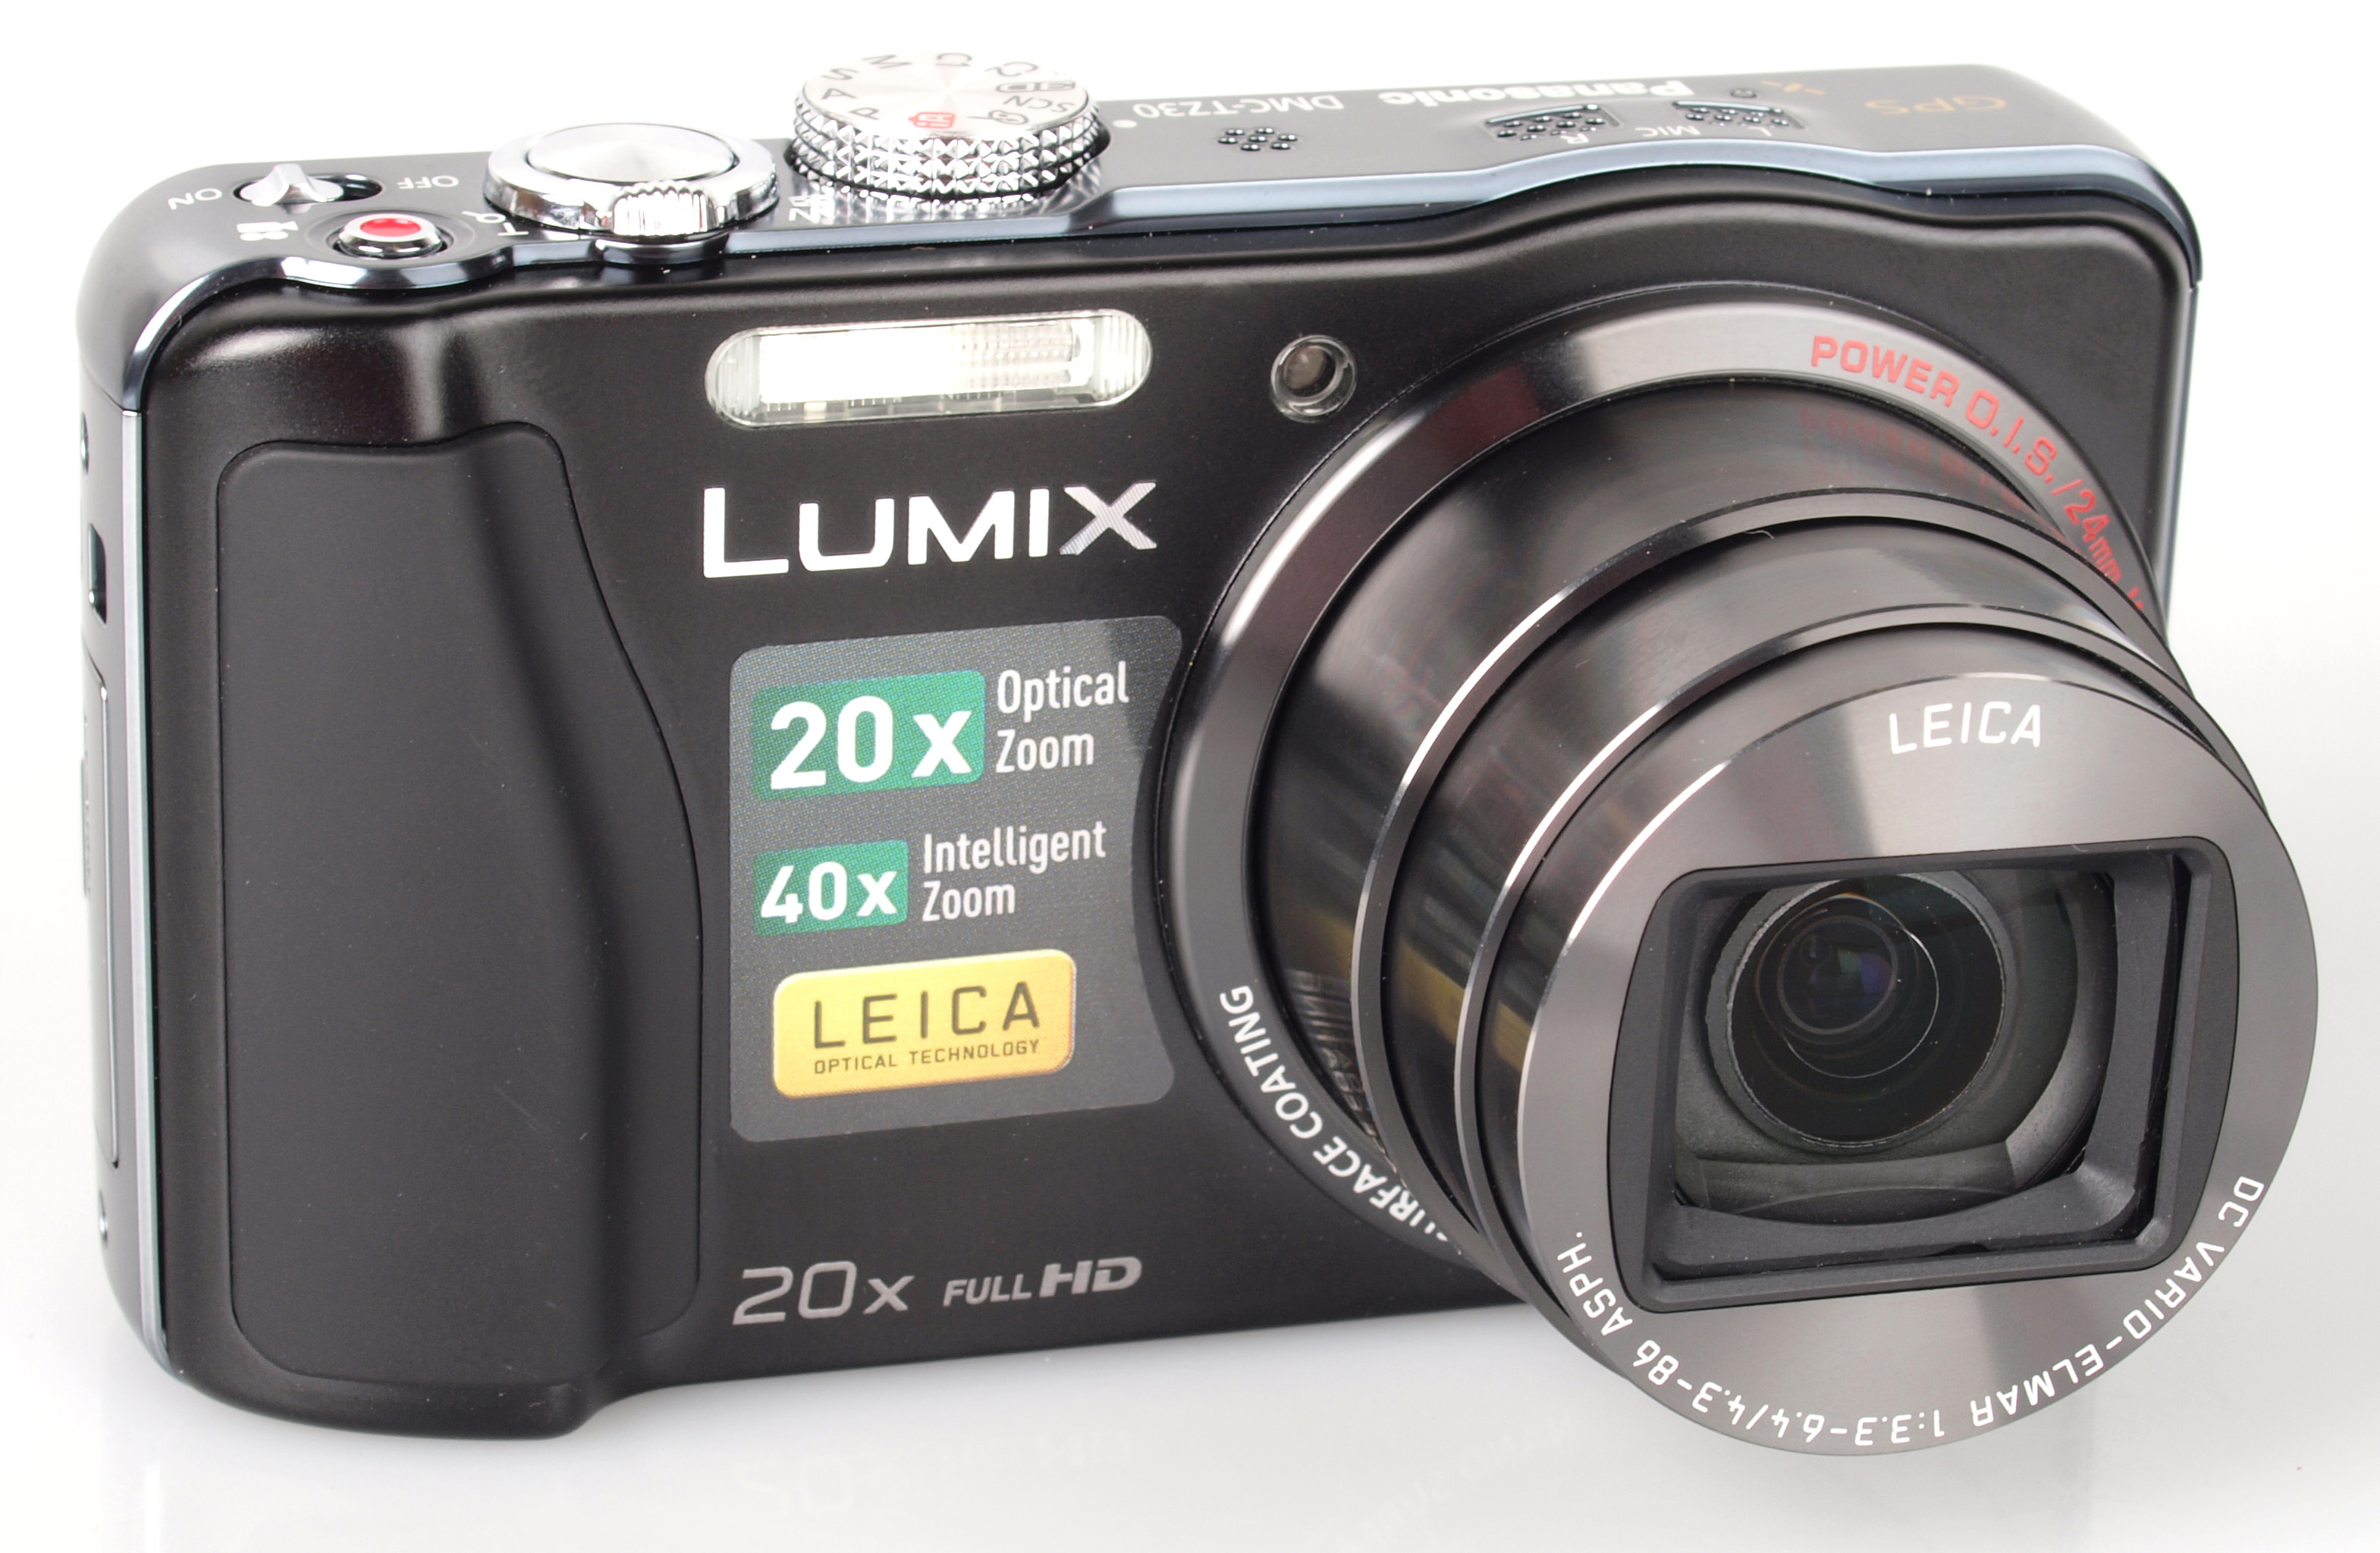 lumix zs20 user guide free owners manual u2022 rh wordworksbysea com panasonic lumix dmc zs20 owners manual panasonic lumix dmc-zs20 owners manual for advanced features